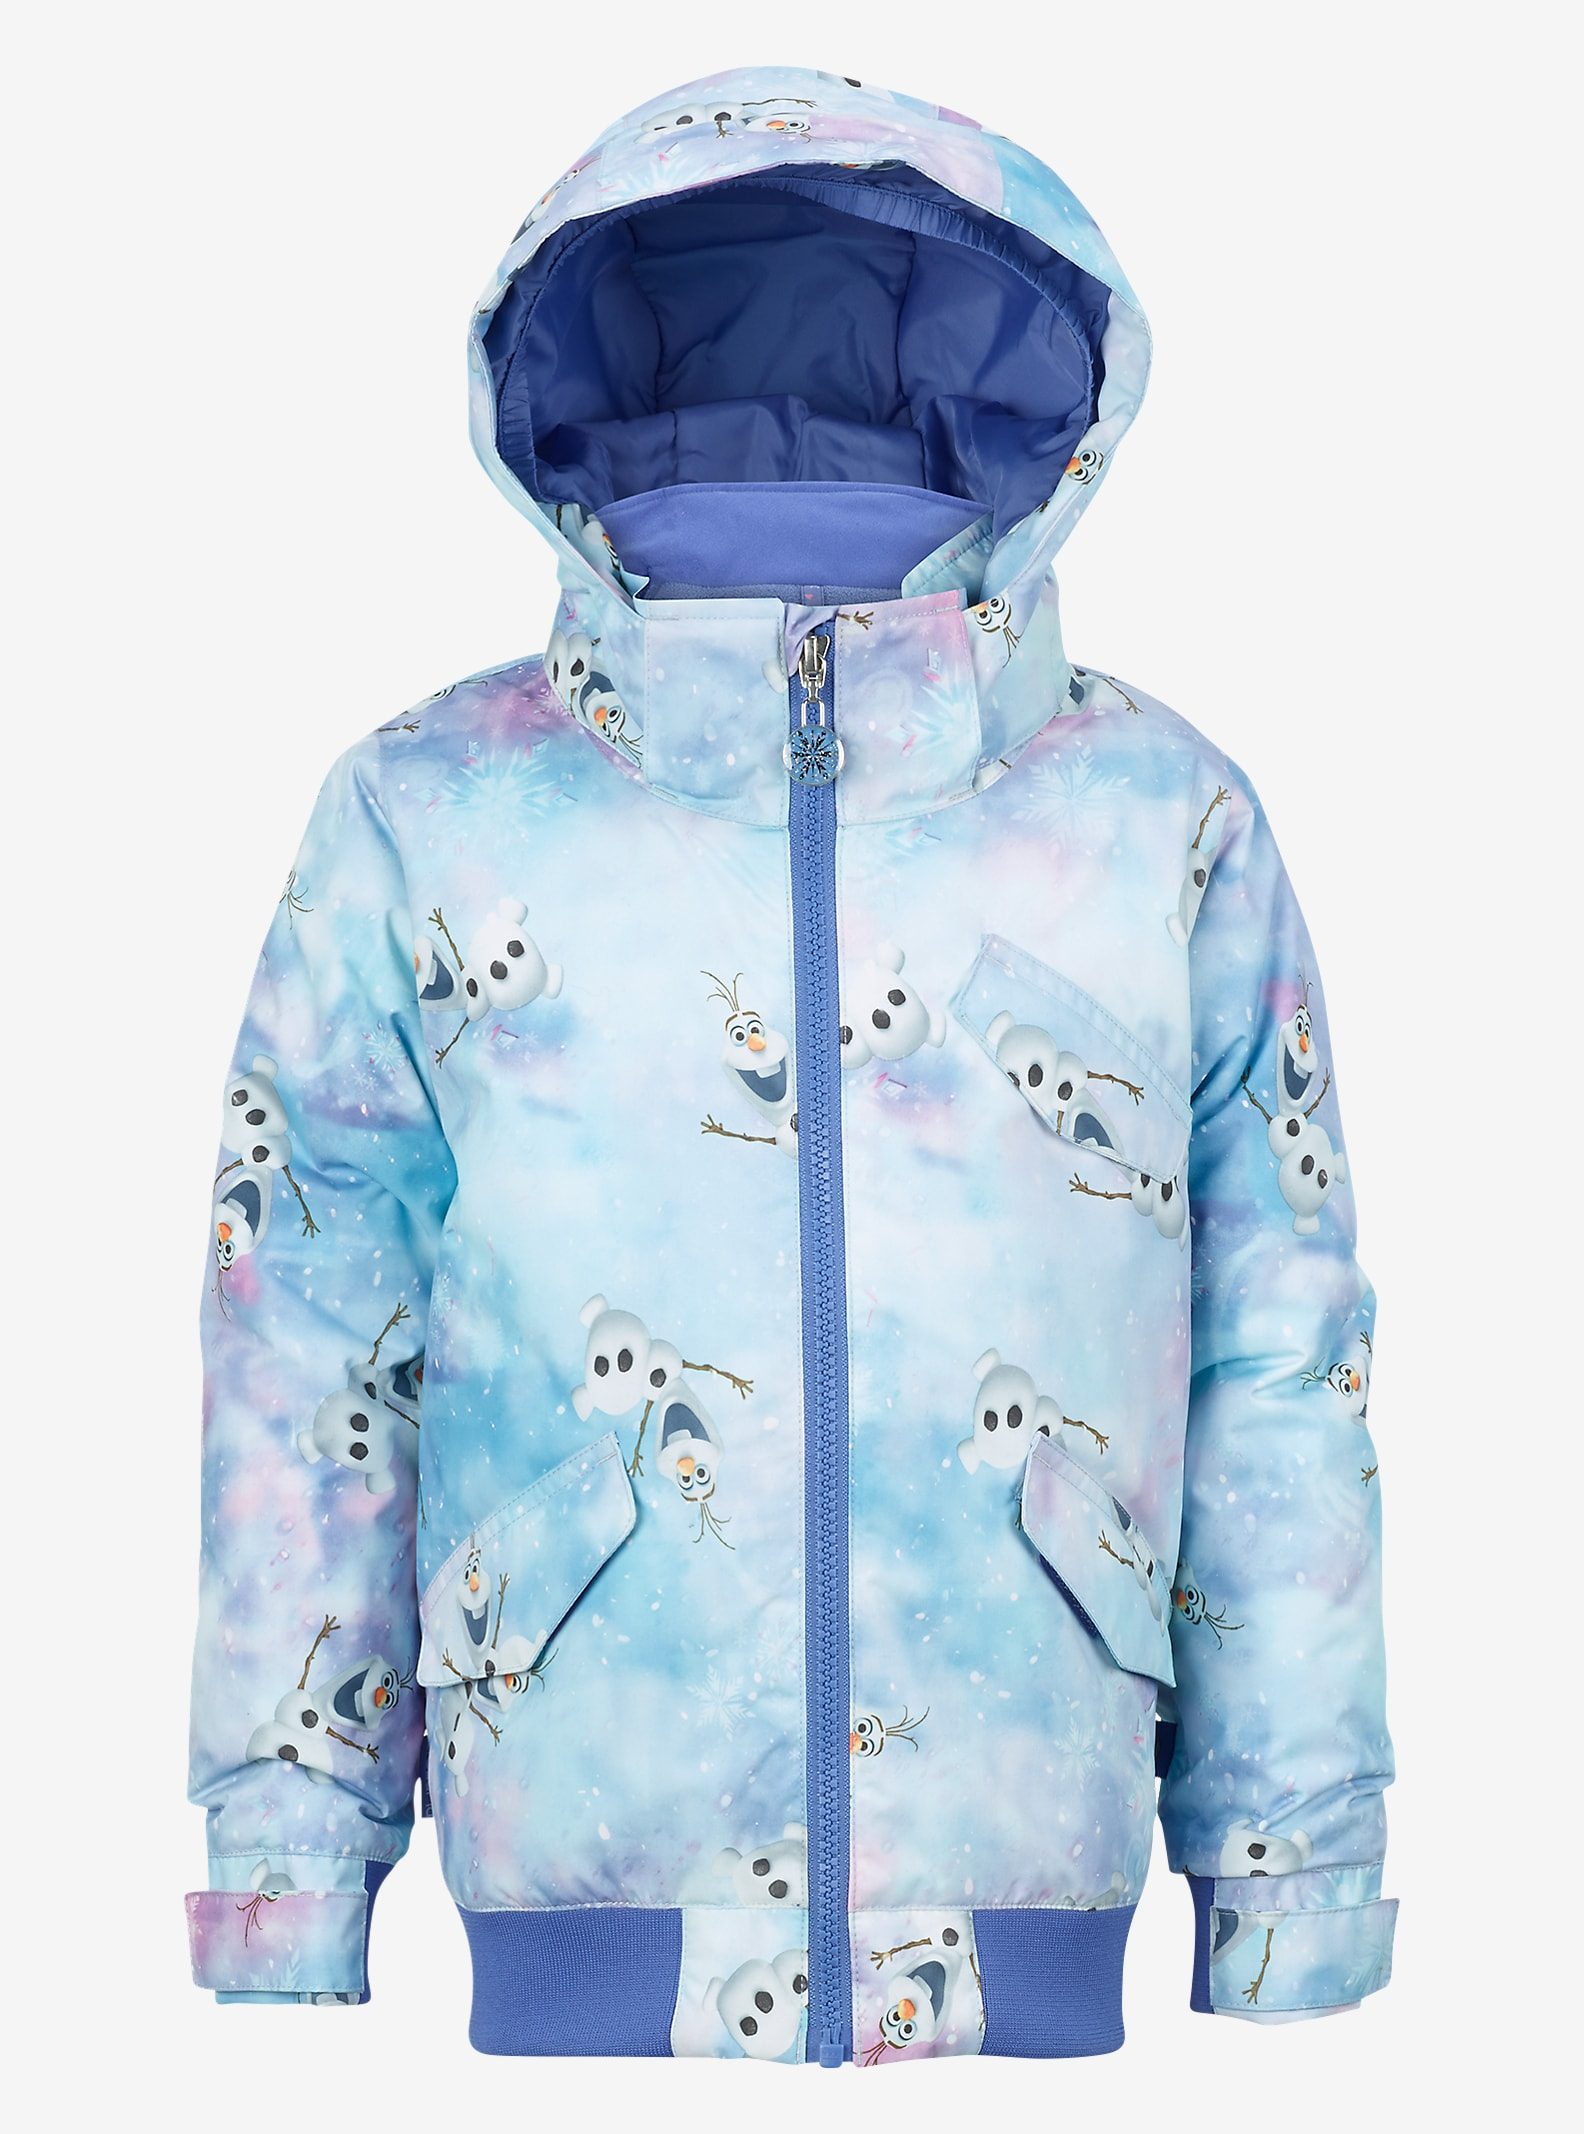 Frozen de Disney - Manteau aviateur Minishred Twist pour fille affichage en Imprimé Olaf Frozen de © Disney